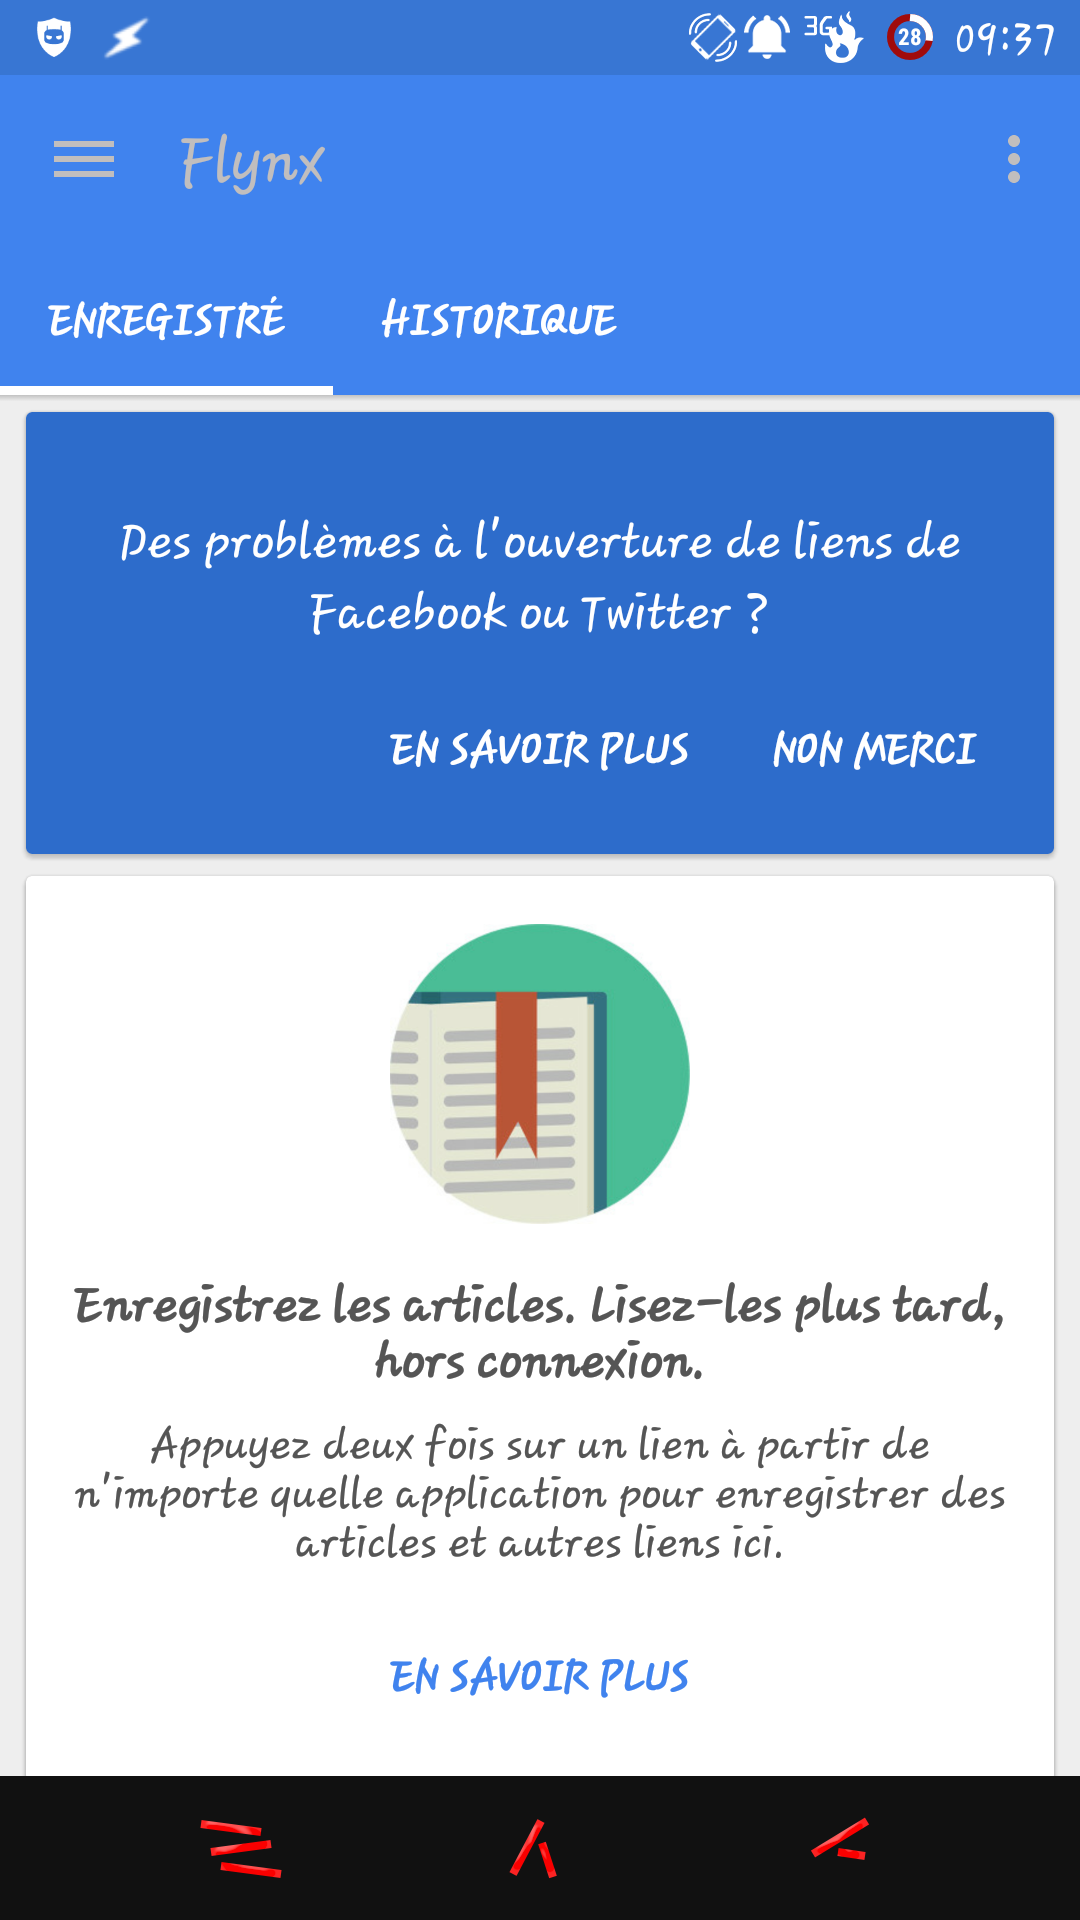 [APPLICATION ANDROID - FLYNX] Lire le web plus intelligemment avec Flynx 143323691271218